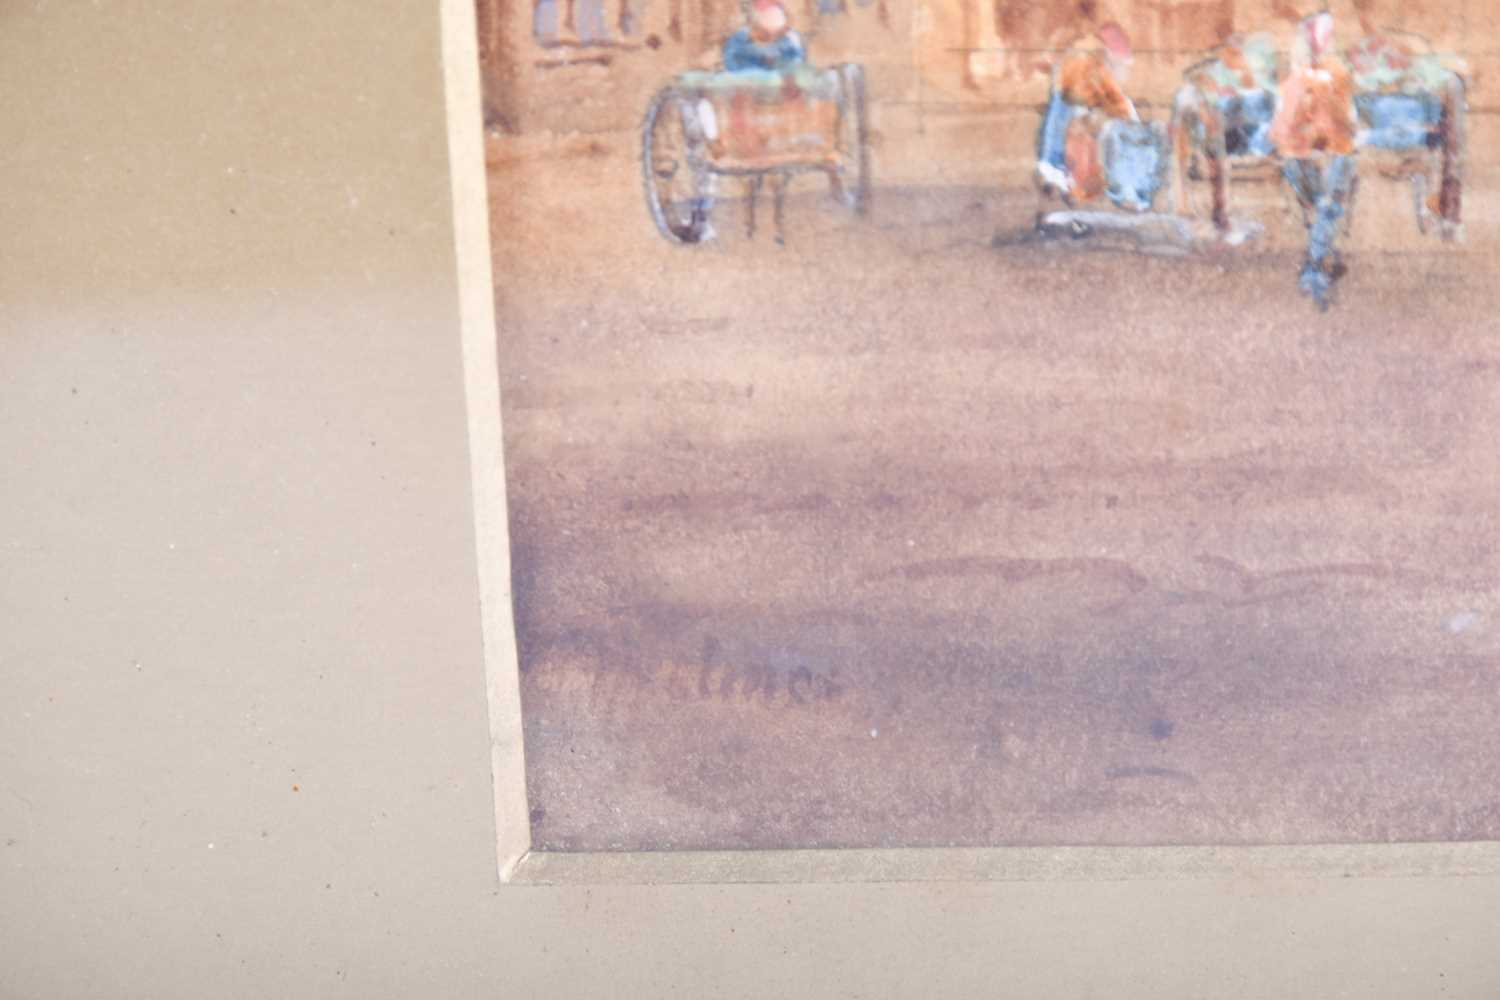 Edward Nevil (British, fl: 1880 - 1900) 'Ypres' & 'Malines', signed, watercolour, a pair, 27 x 19cm - Image 6 of 7